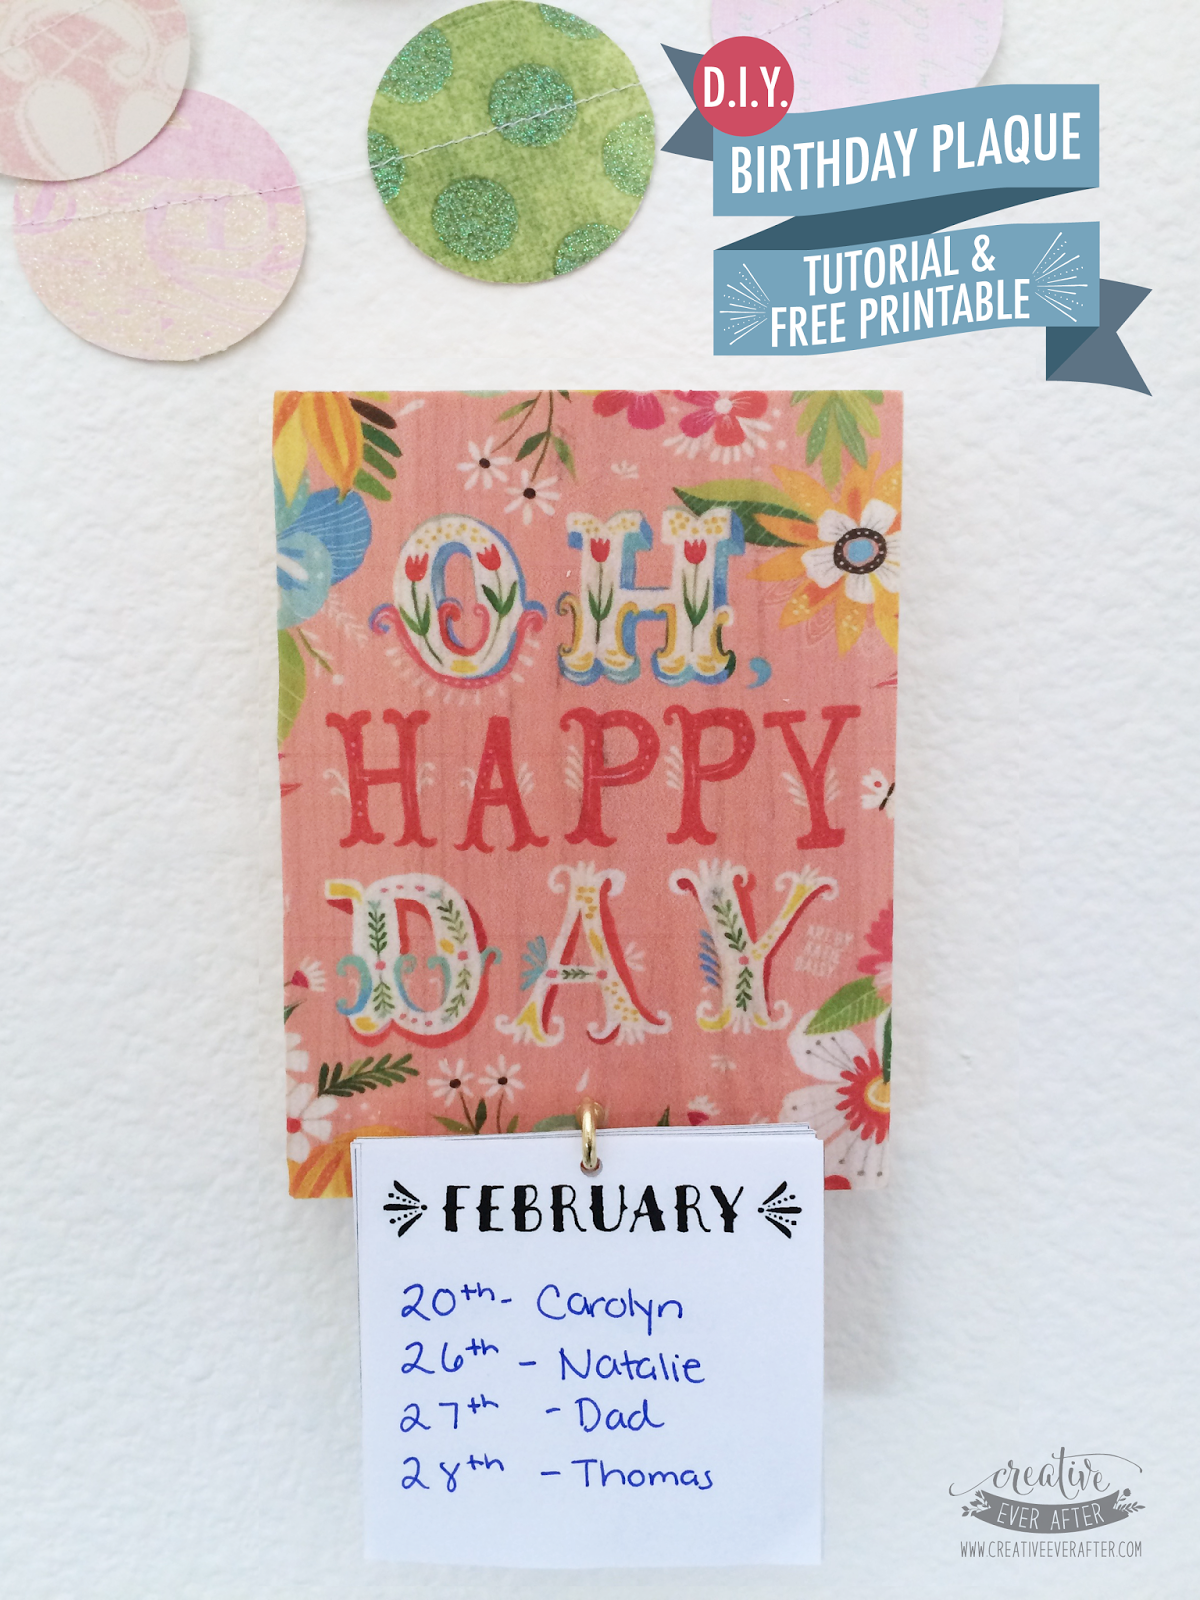 Diy Birthday Calendar : Diy birthday calendar plaque tutorial and free